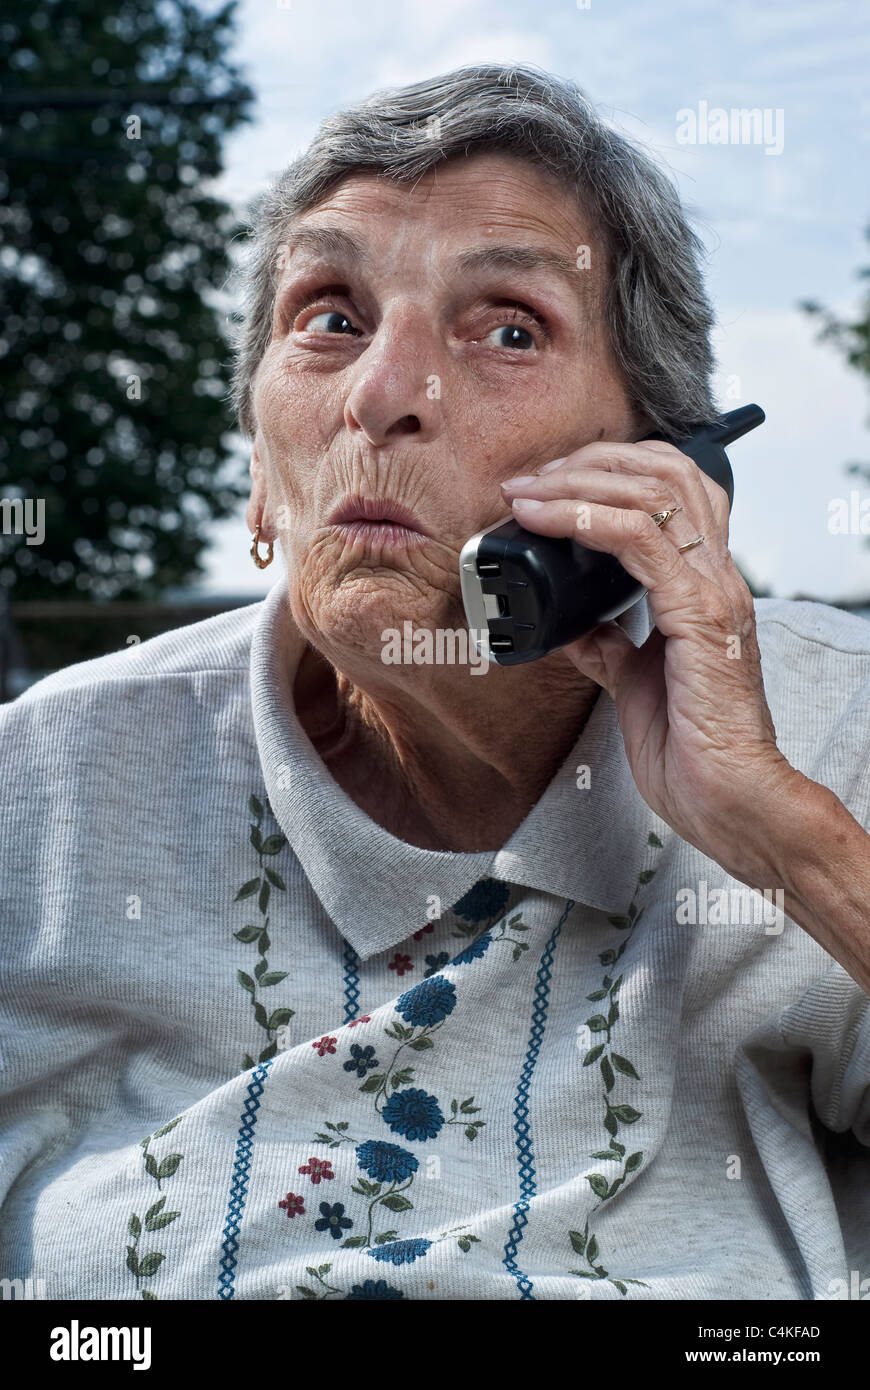 An elderly woman, with a look of surprise on her face, talks on a cordless phone. - Stock Image